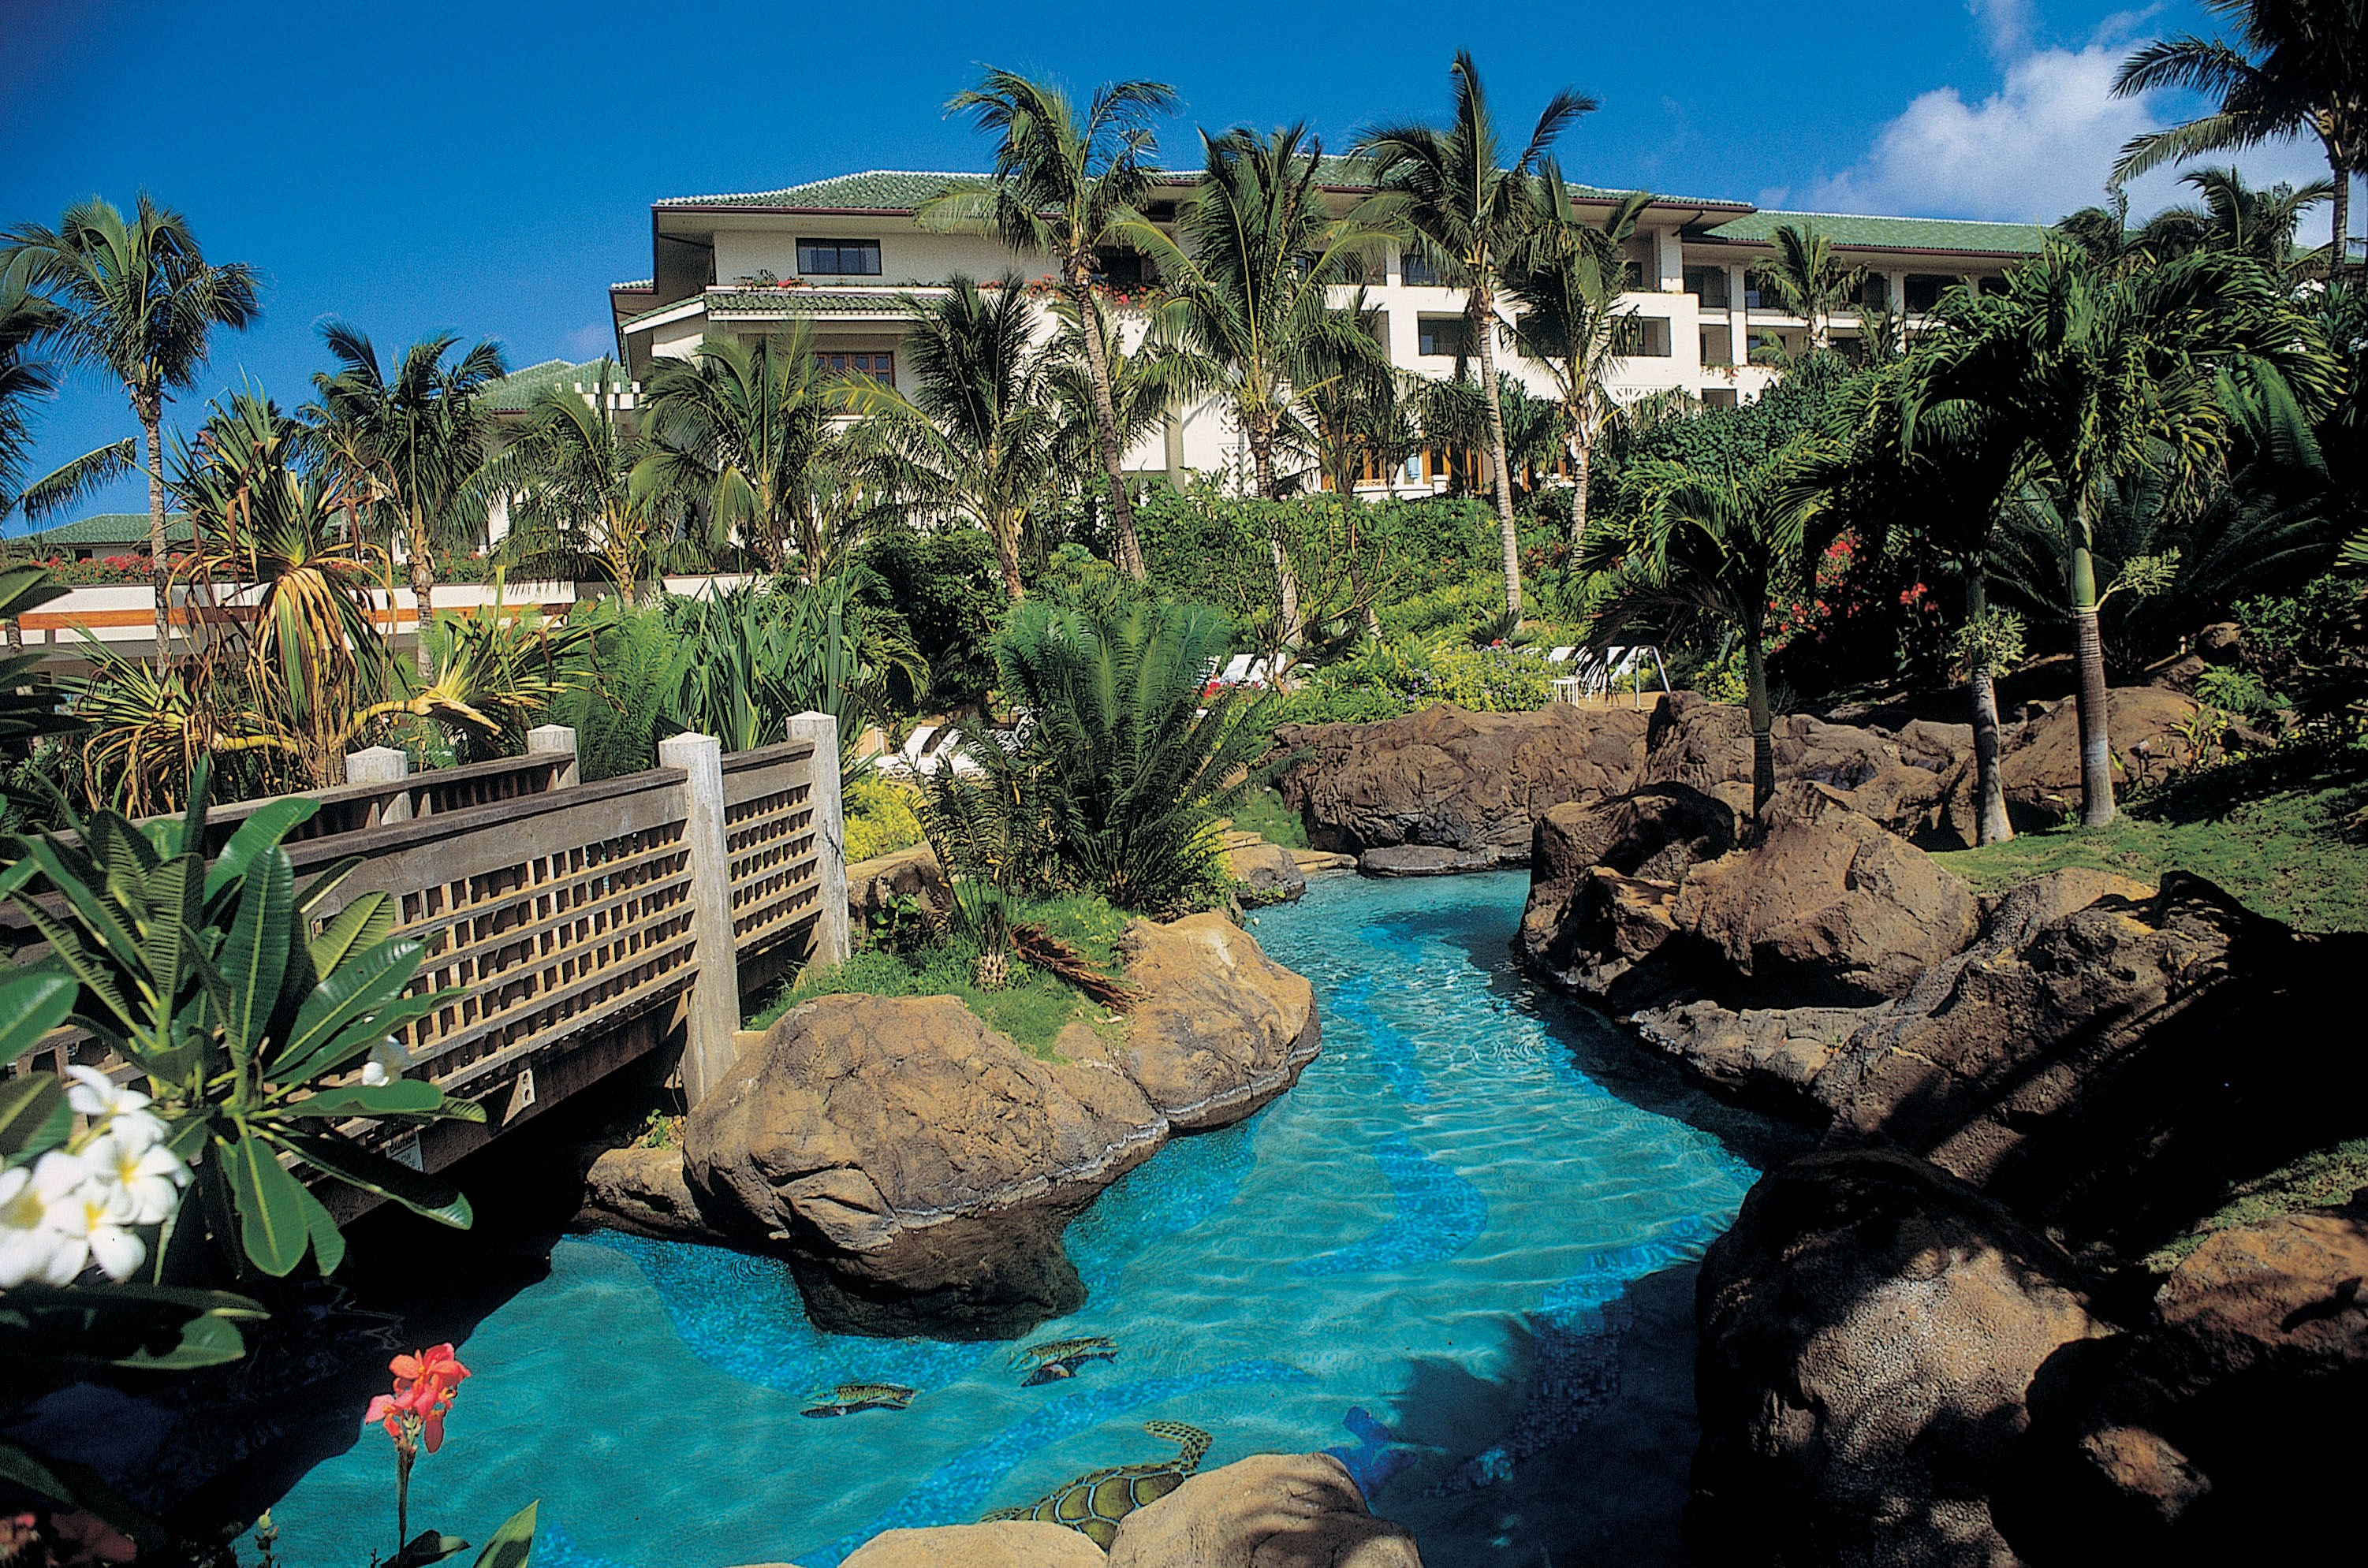 Grand Hyatt Kauai: Greetings from the Garden Isle!